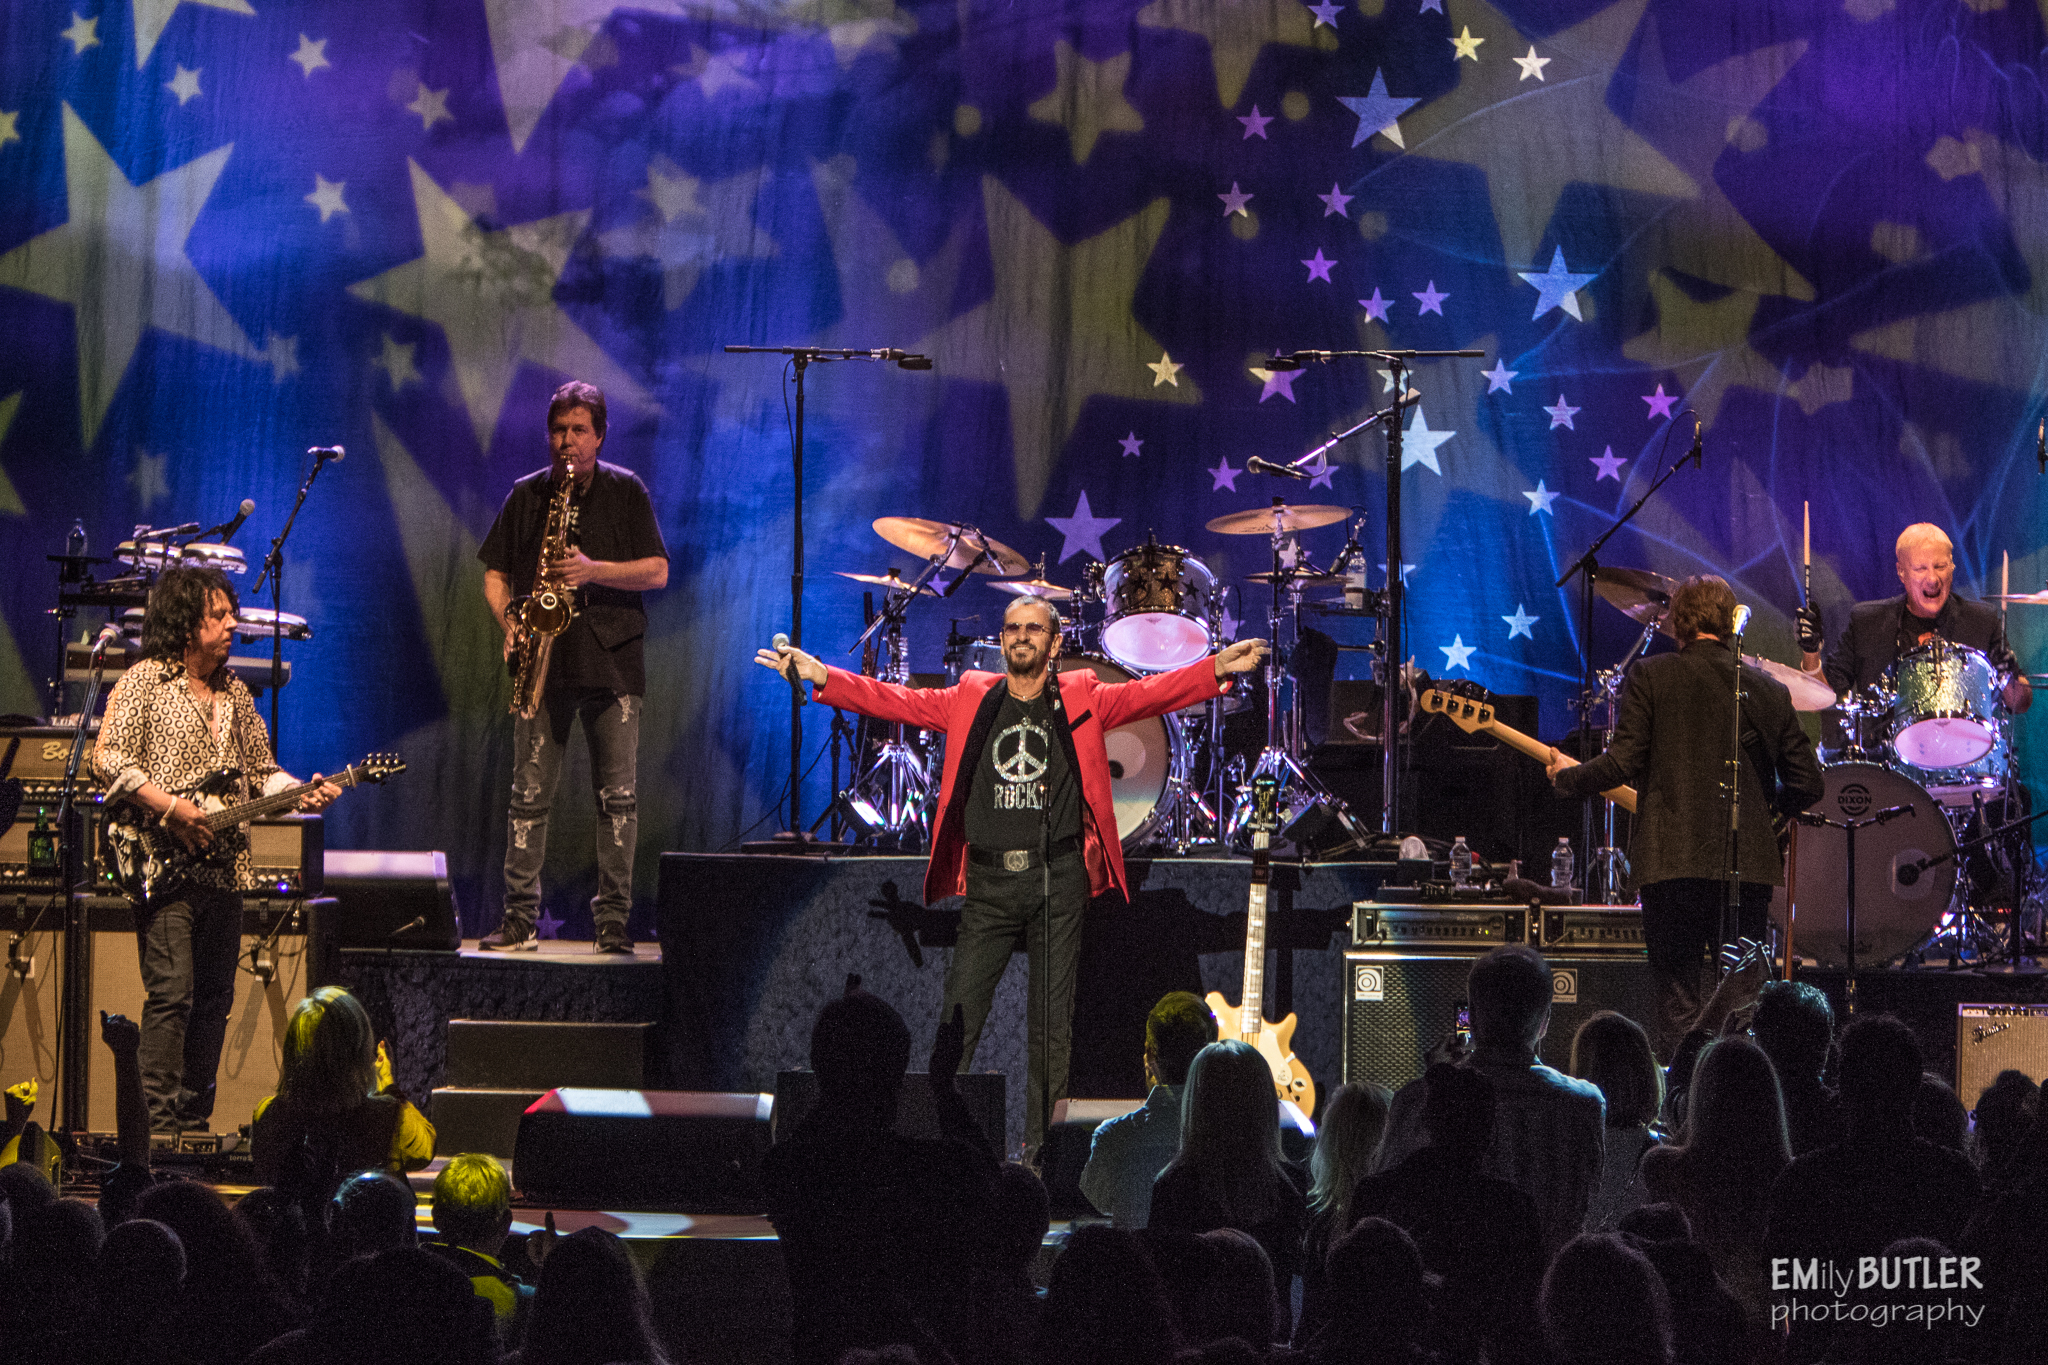 Ringo Starr and His All-Starr Band